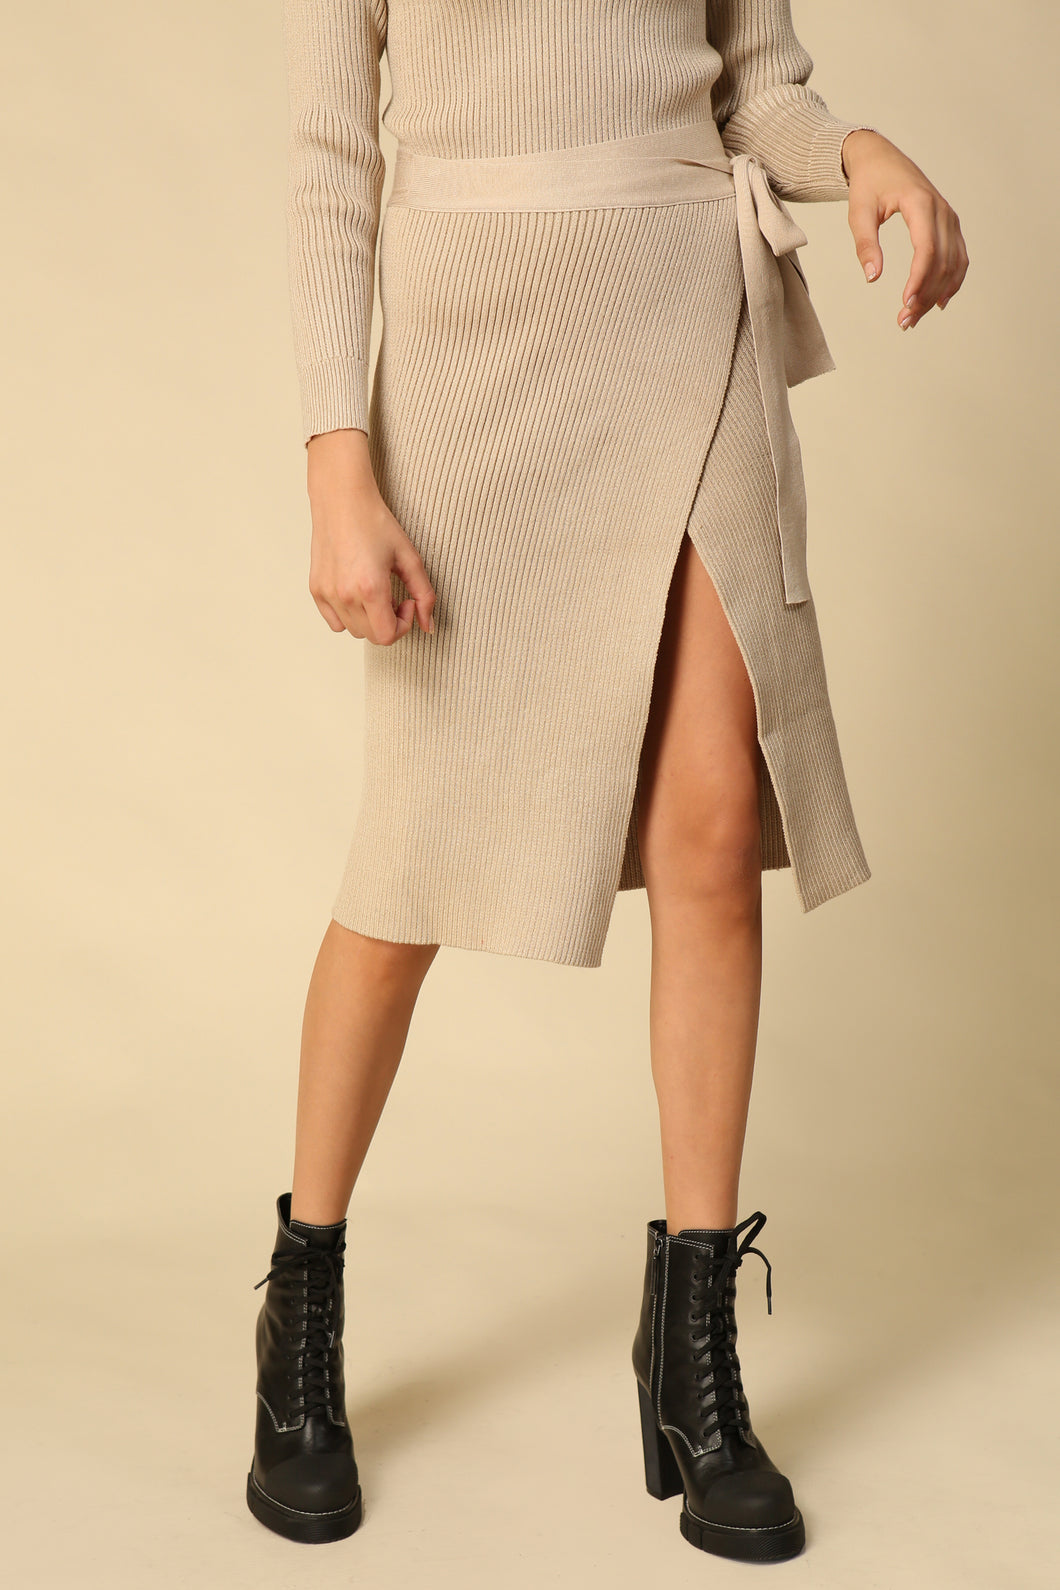 Alyssa Sweater Set Wrap Skirt